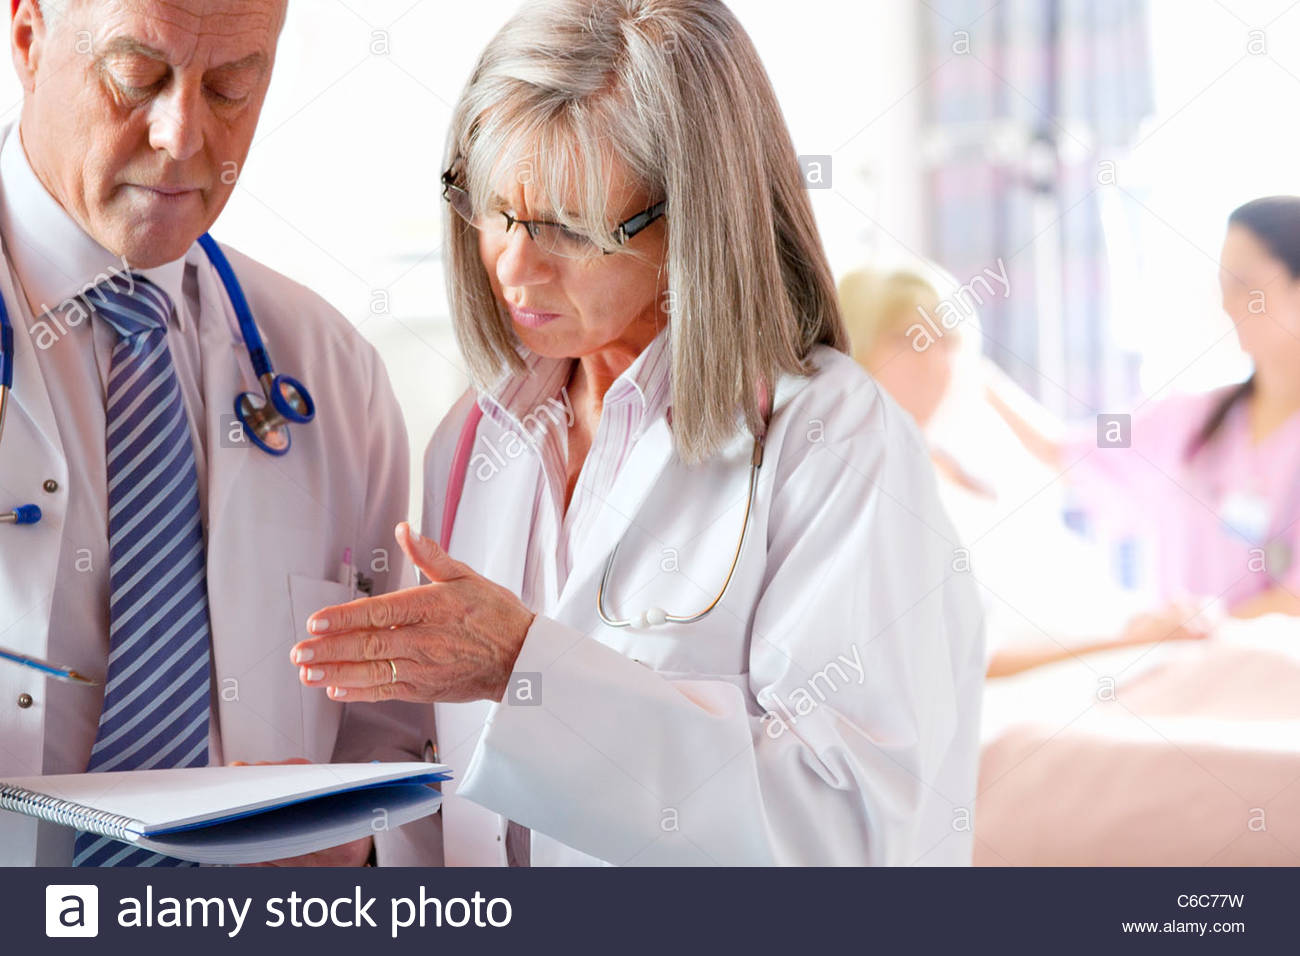 Doctors discussing medical chart in hospital with patient and nurse in background - Stock Image